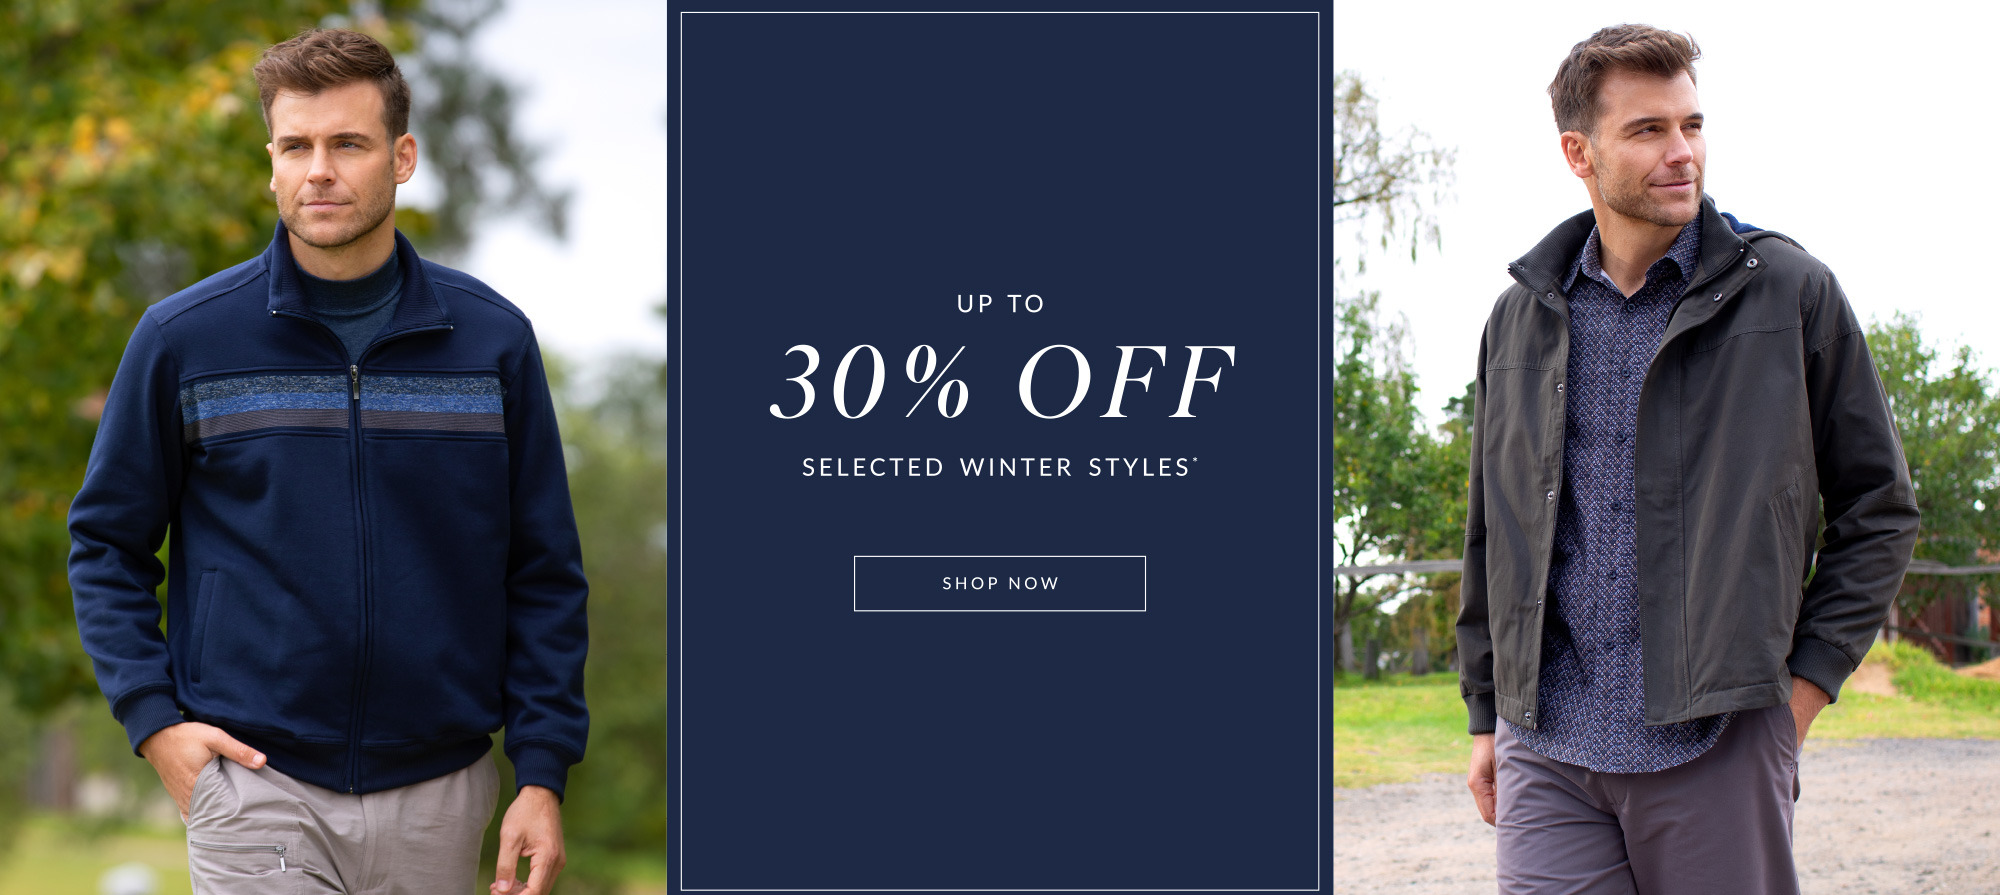 Shop selected styles up to 30% Off